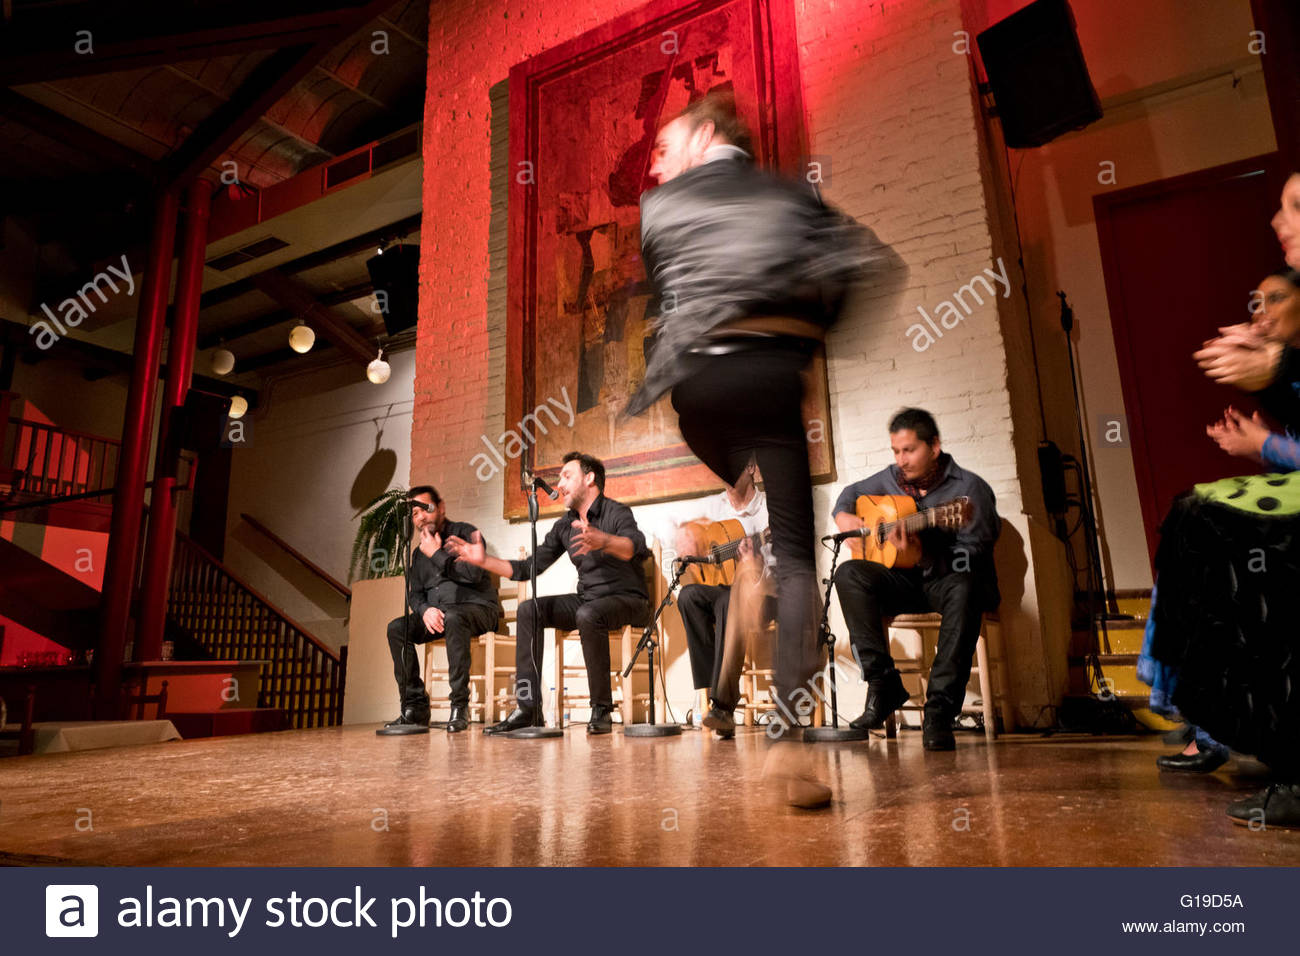 A flamenco dancer in Barcelona, Spain. - Stock Image